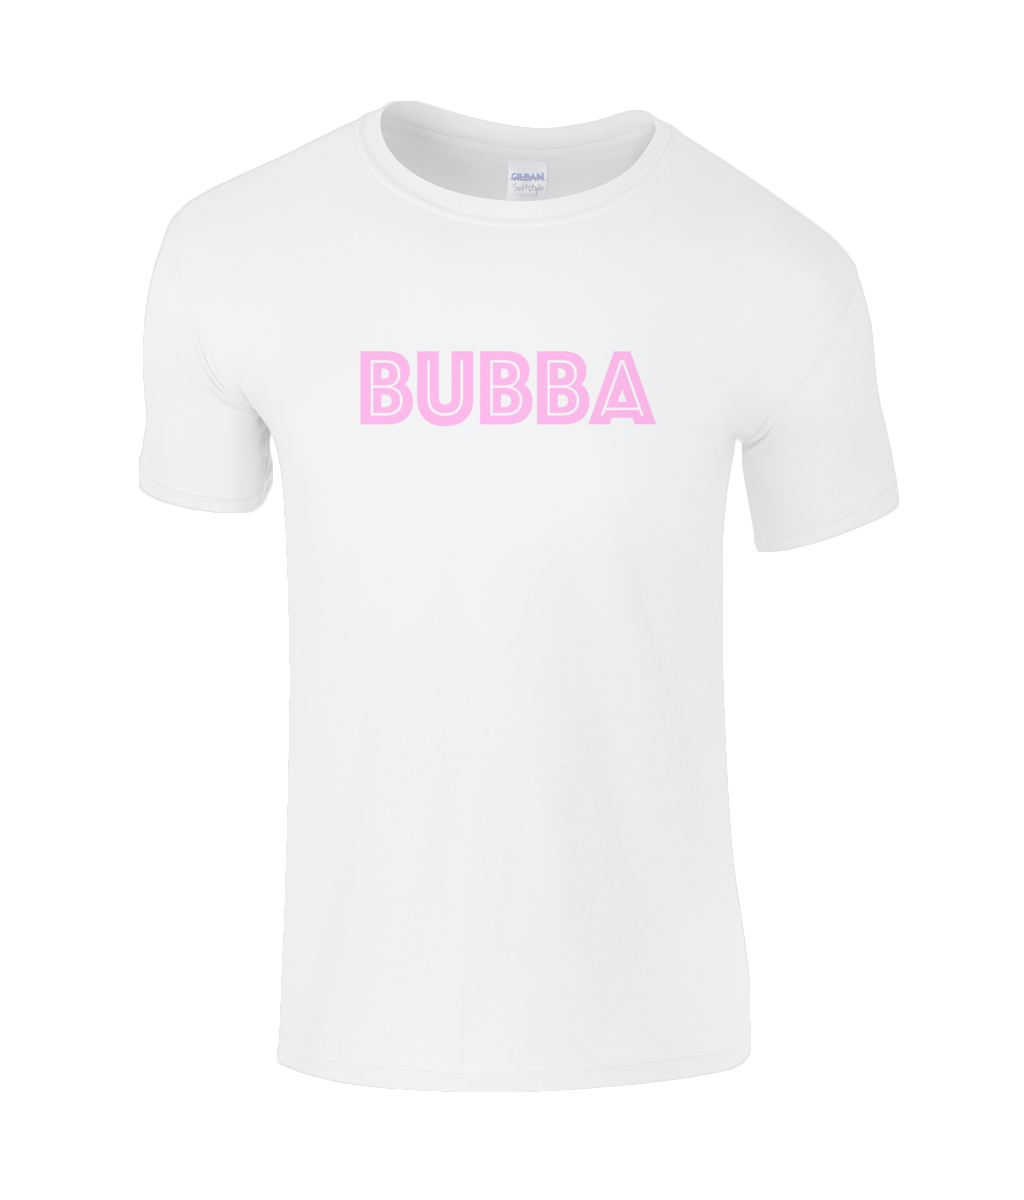 Bubba kids t shirt